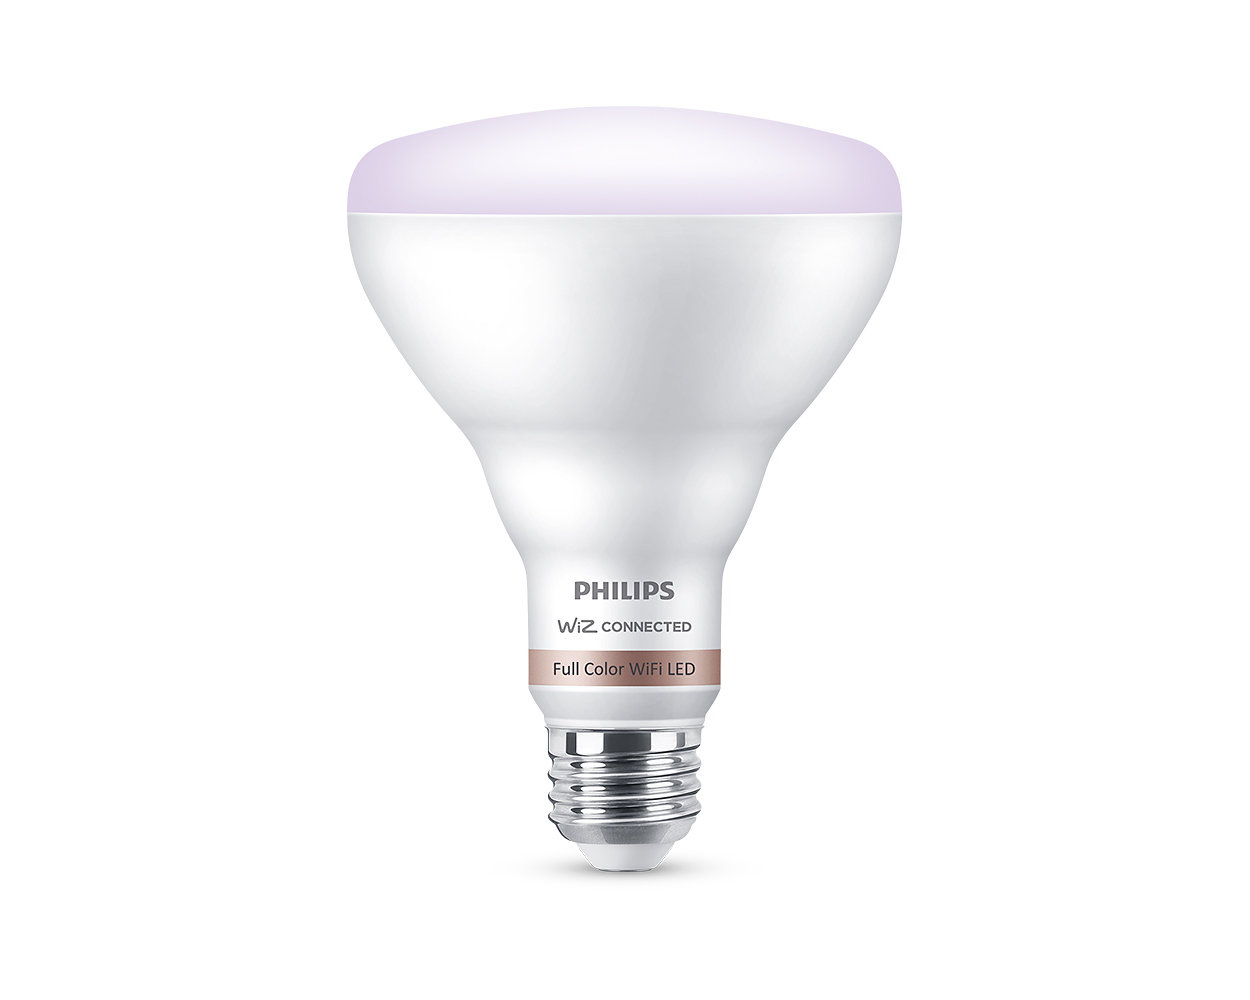 Easy-to-use smart full color bulb